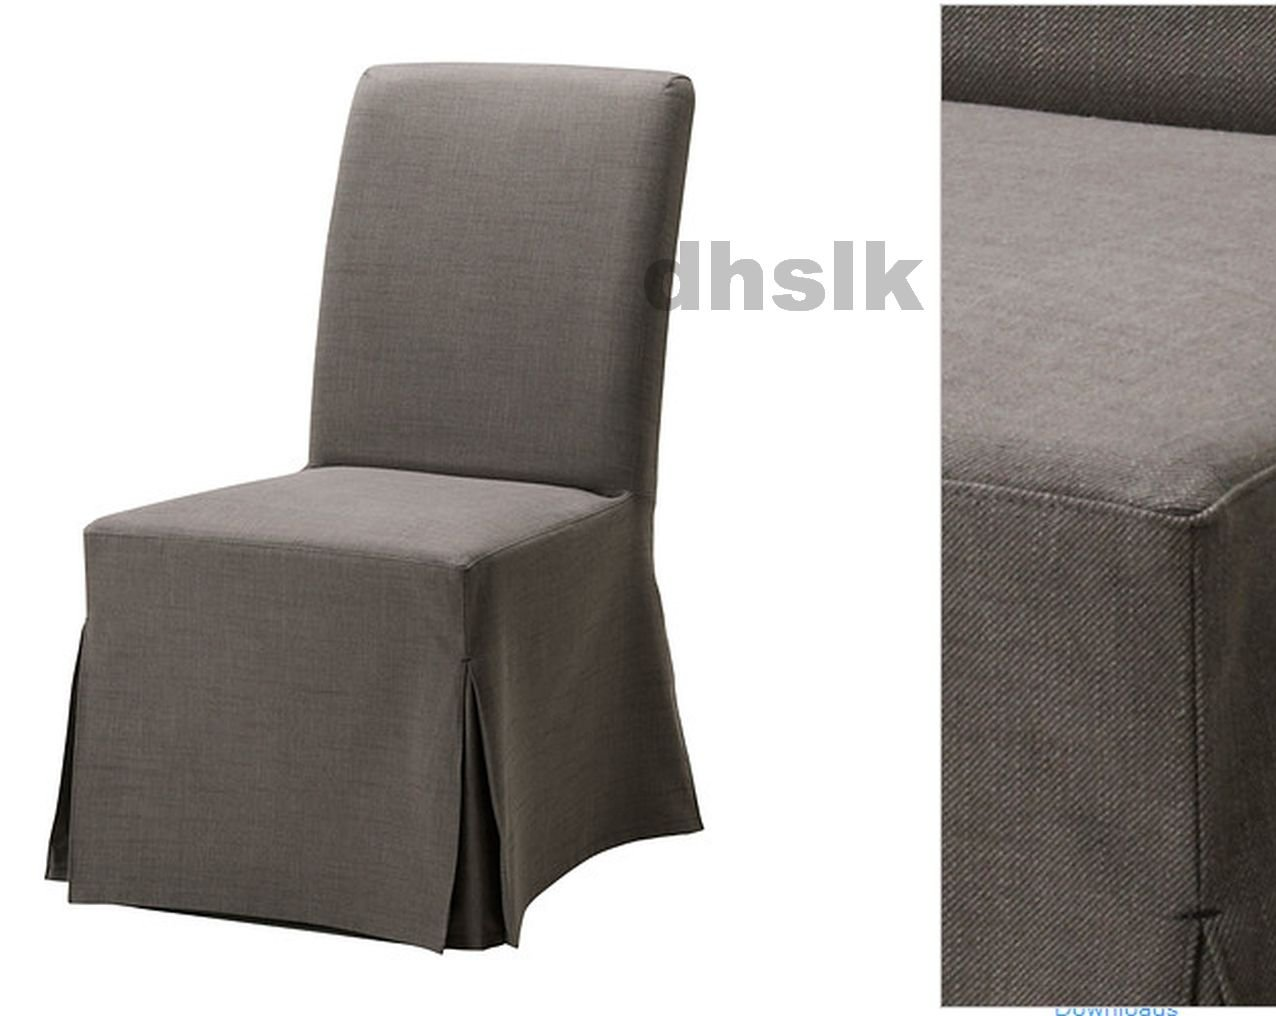 ikea tullsta chair covers uk upright recliner chairs henriksdal slipcover cover skirted svanby gray